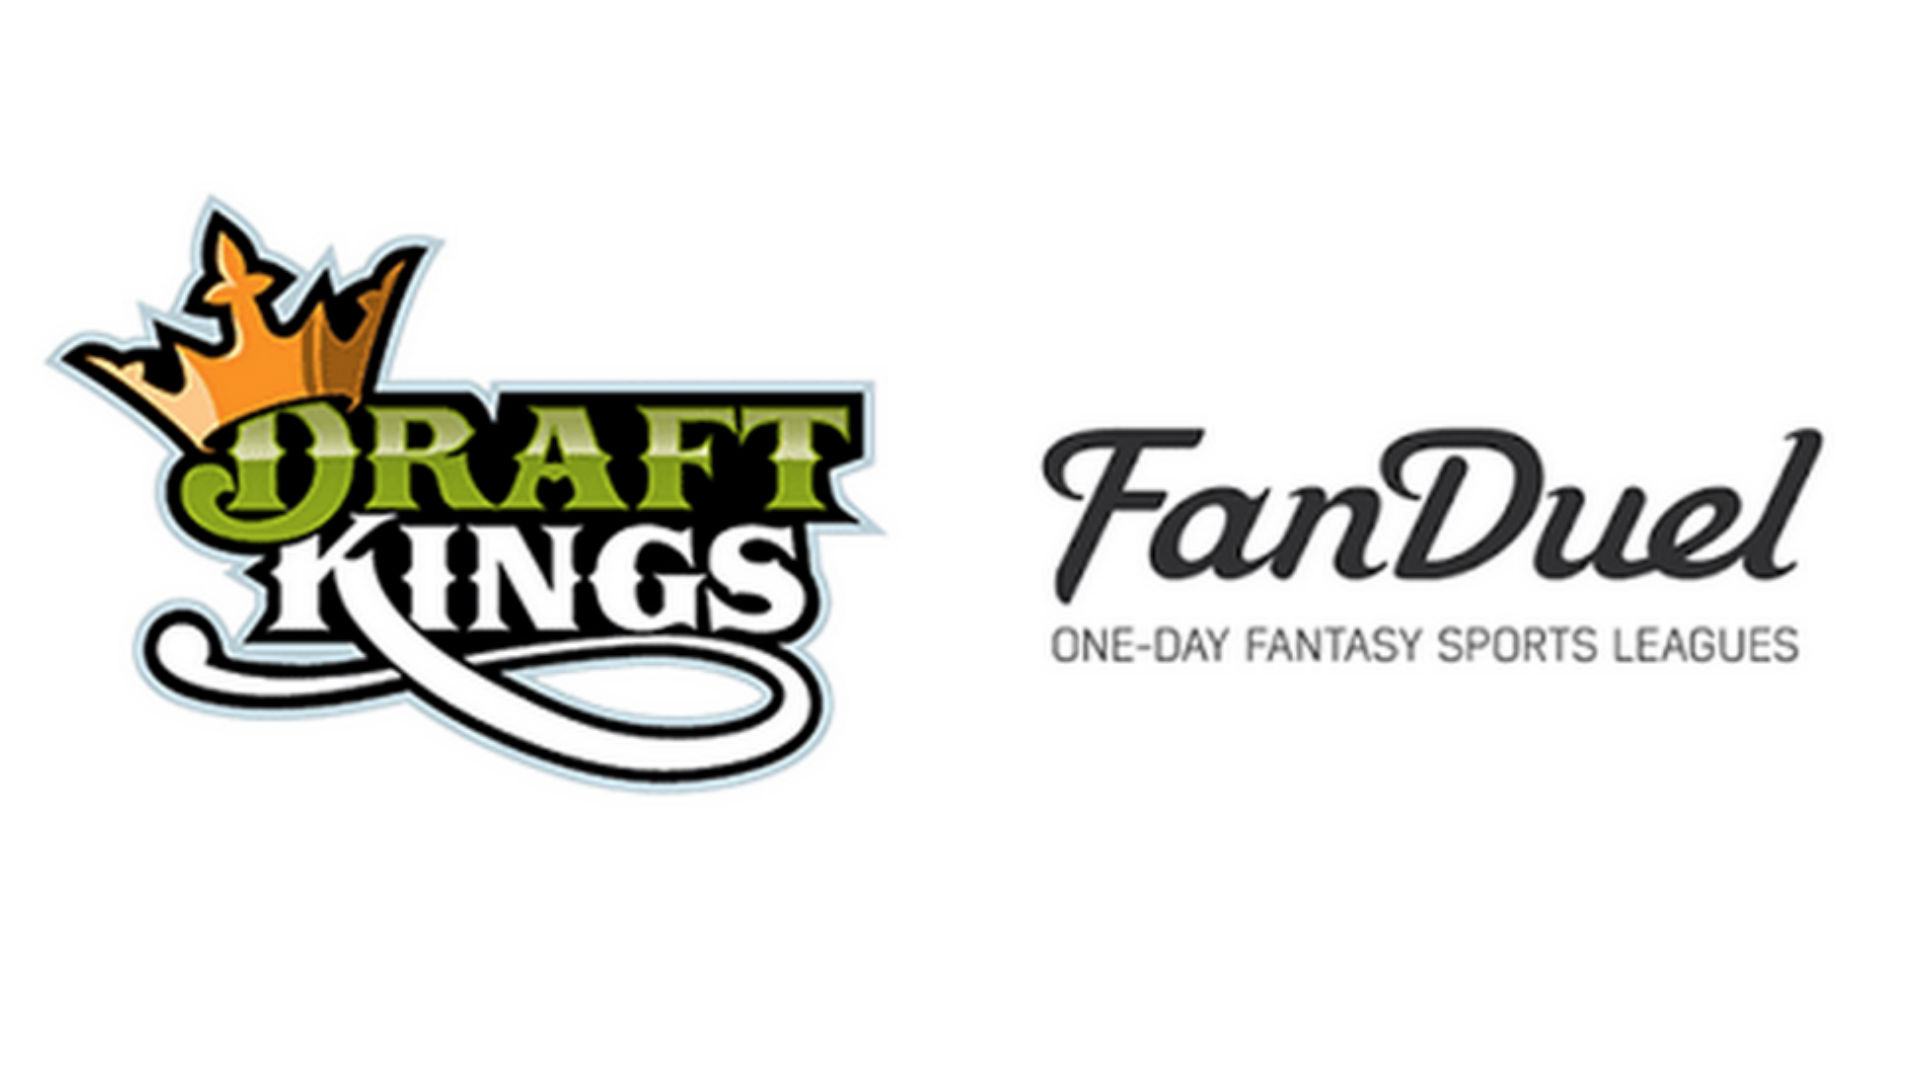 draftkings-fanduel-100915-getty-ftr-us.jpg